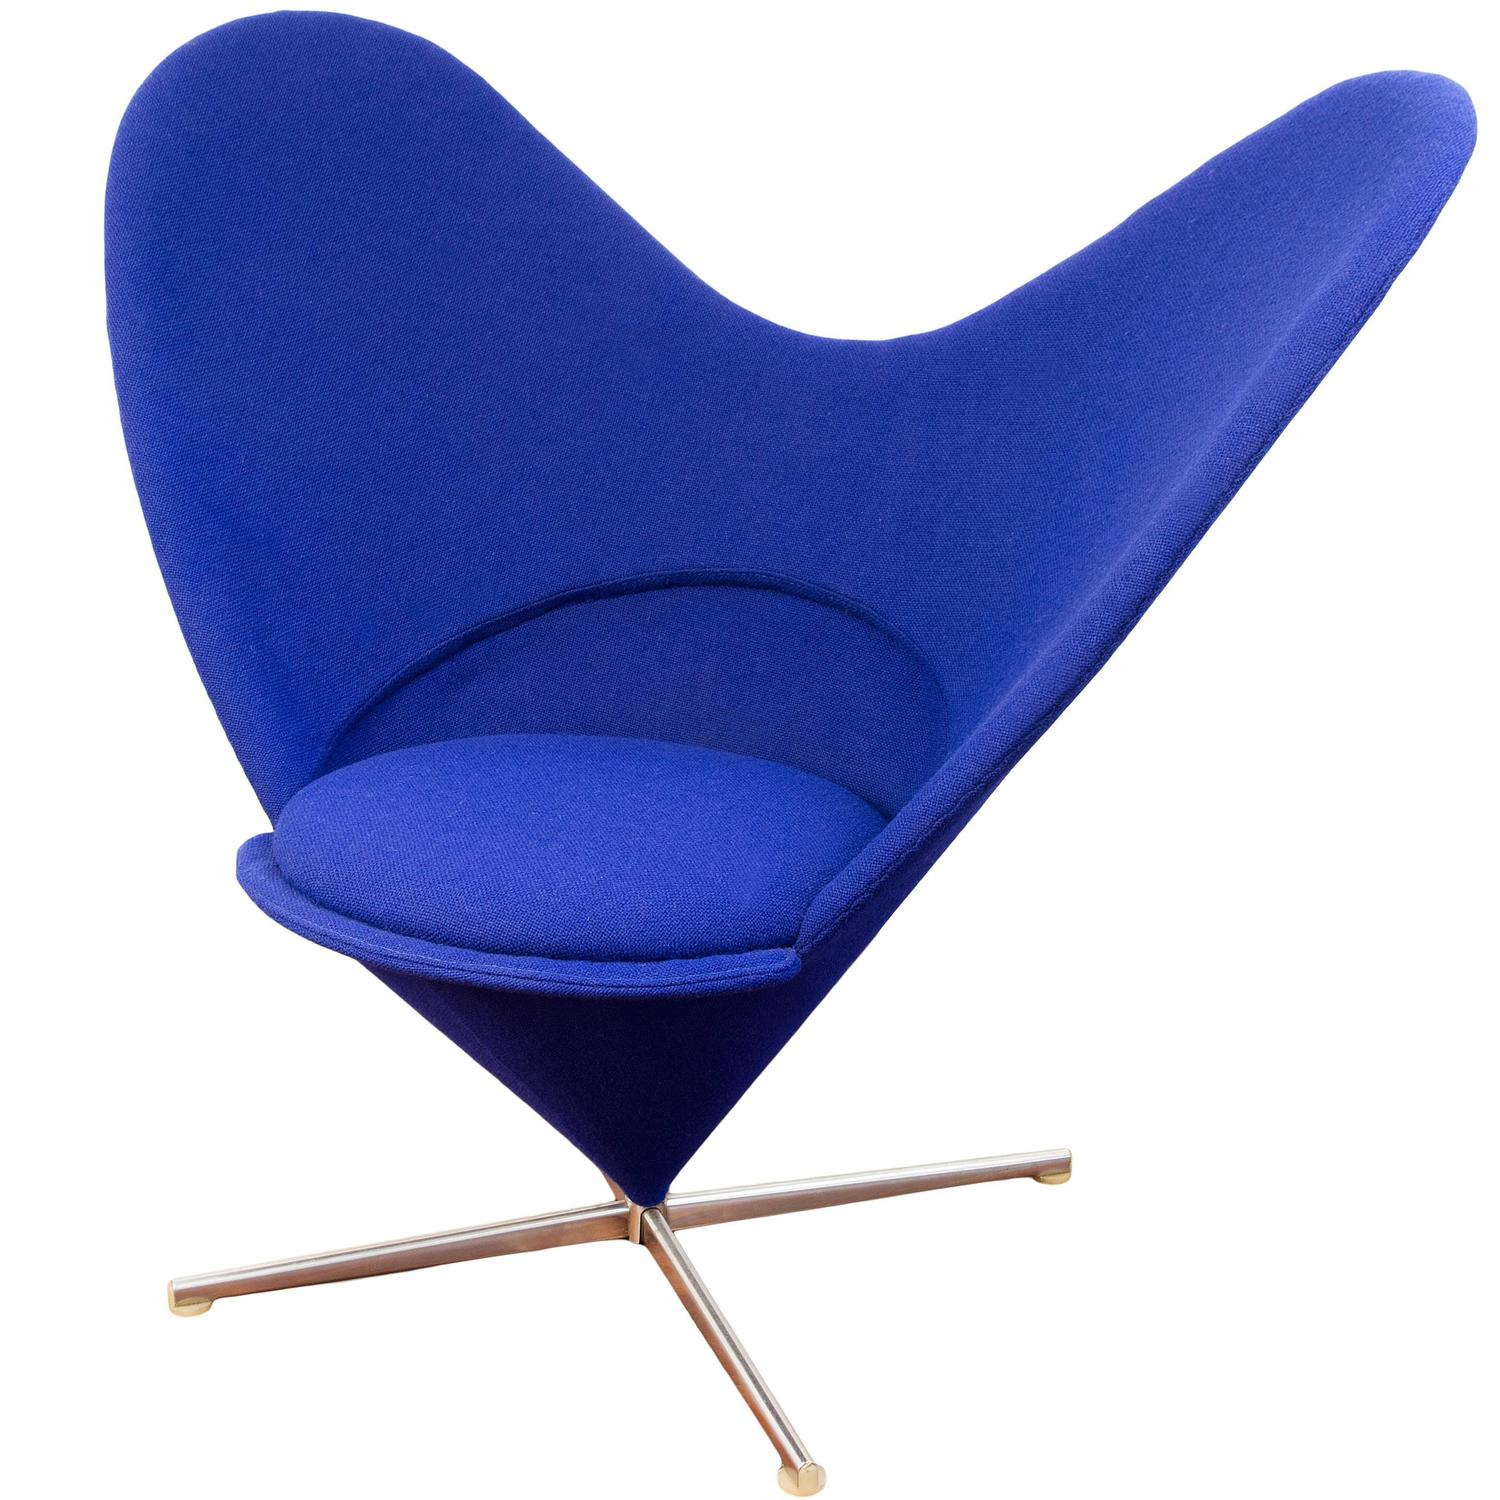 heart chair by verner panton at 1stdibs. Black Bedroom Furniture Sets. Home Design Ideas